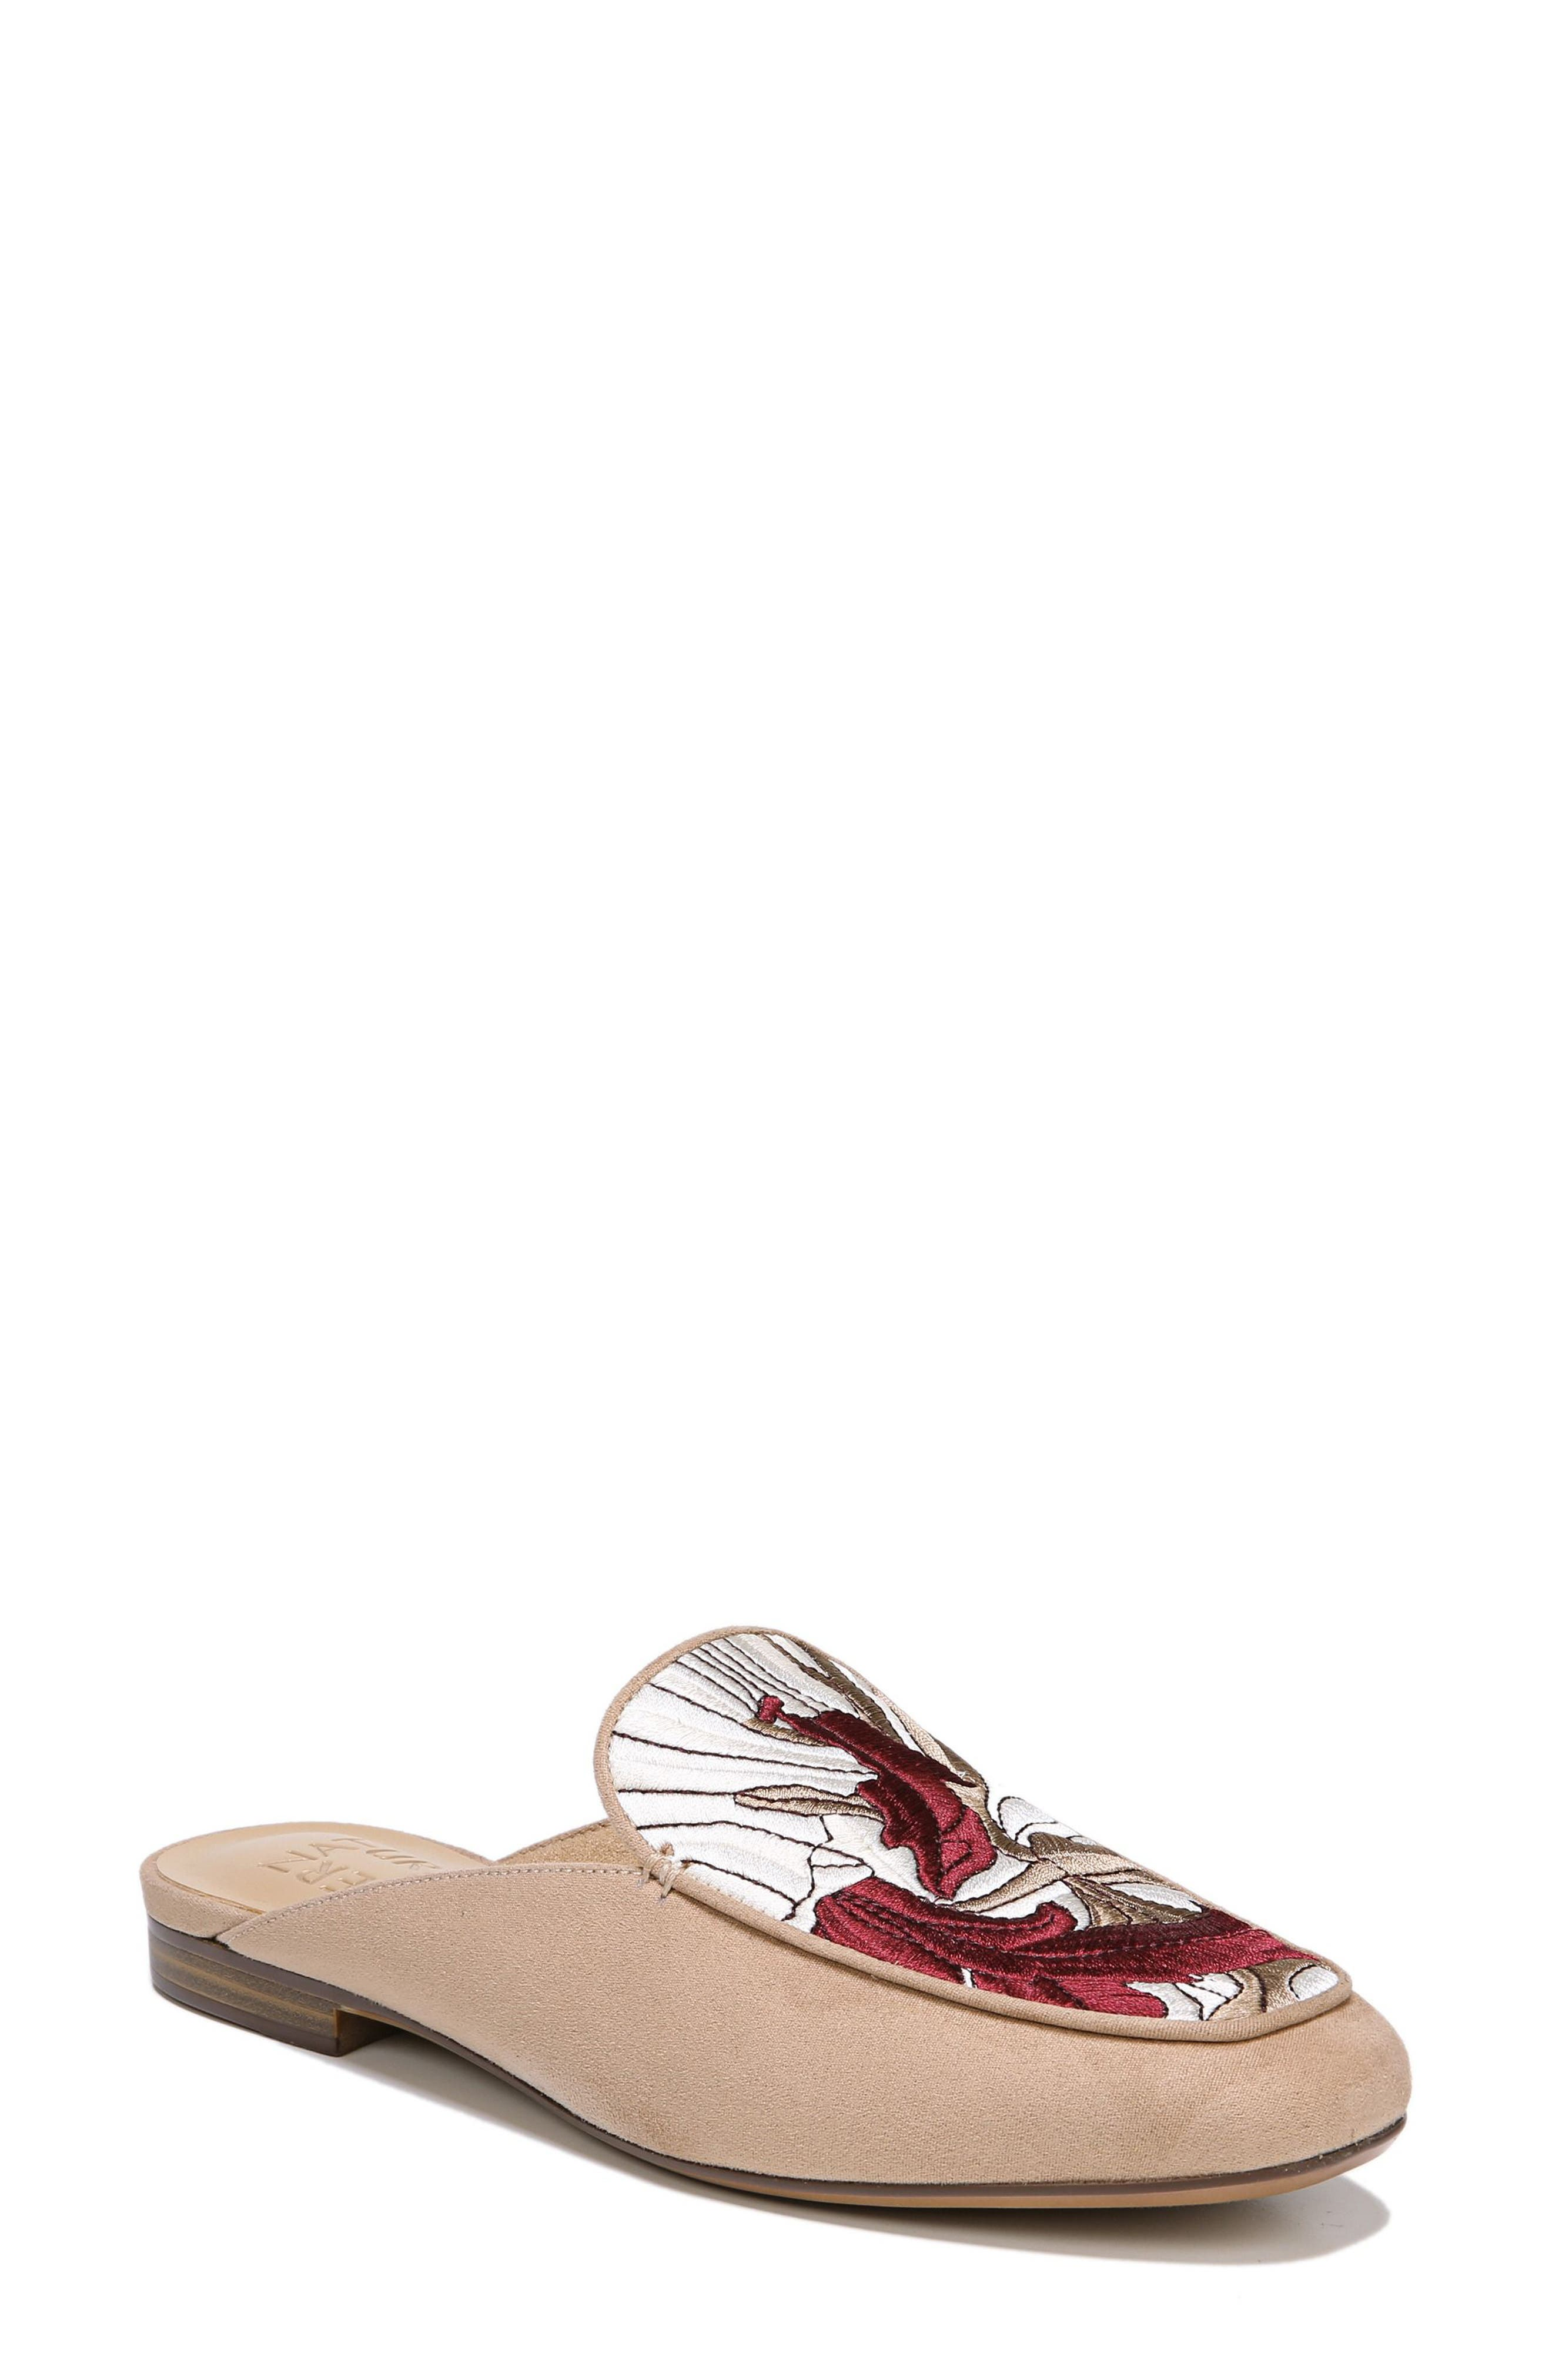 Eden II Embroidered Mule,                         Main,                         color, Barley Fabric